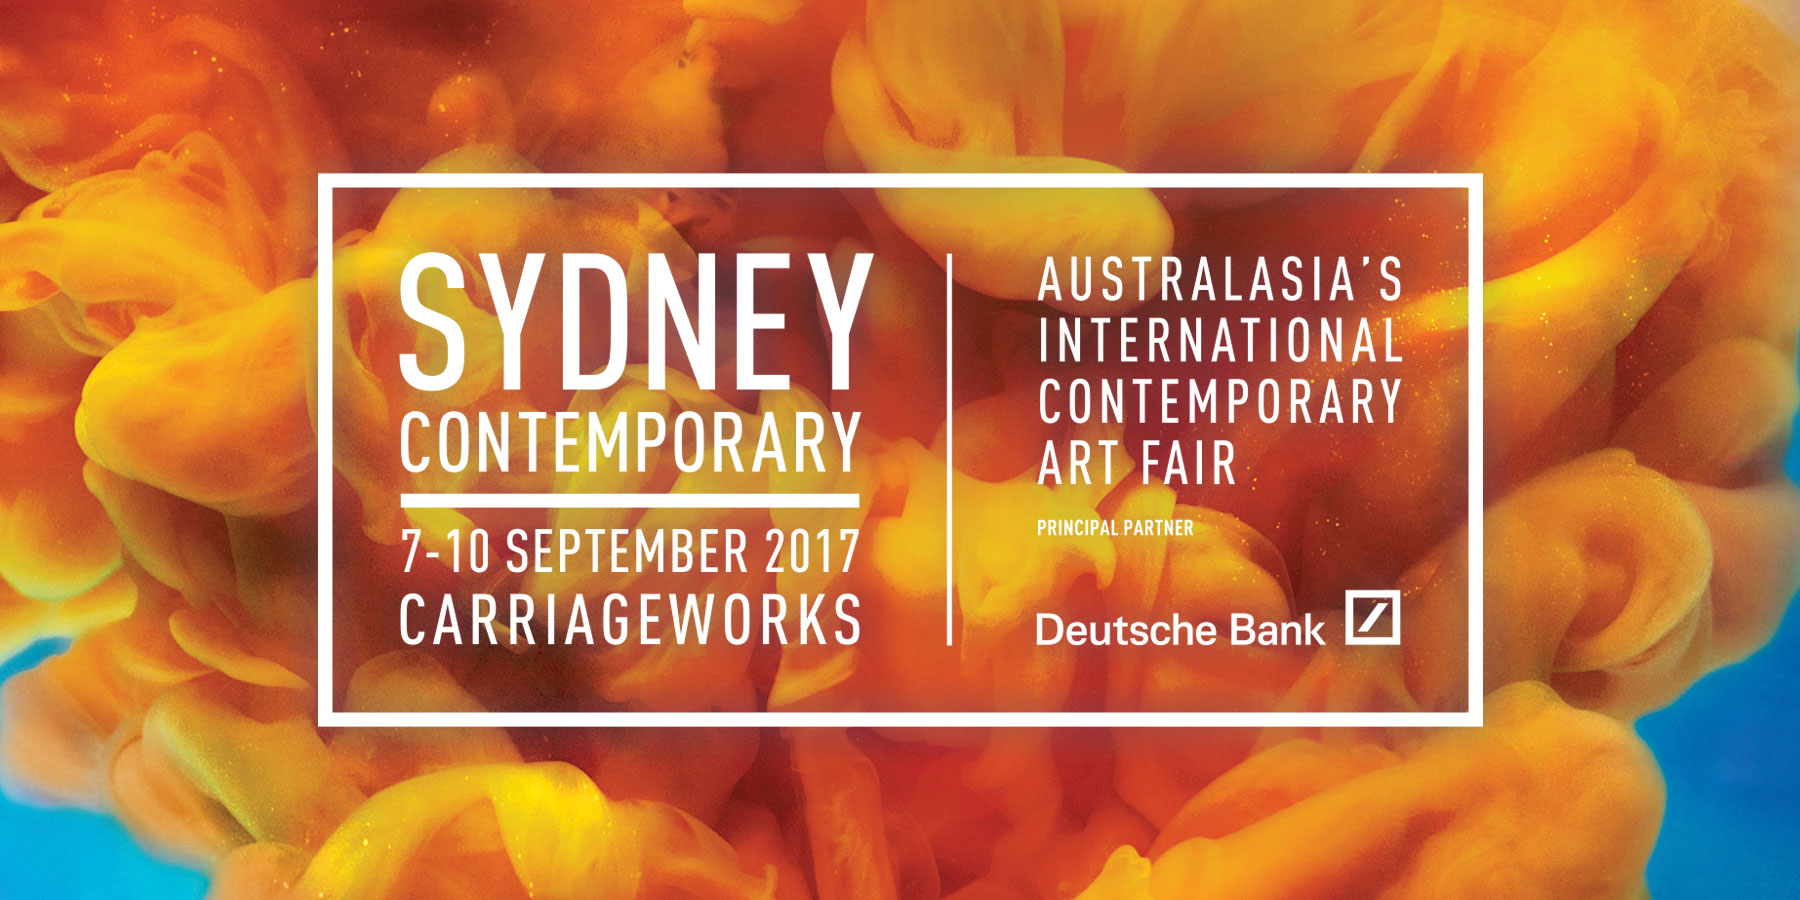 Sydney Contemporary Exhibition Carriageworks